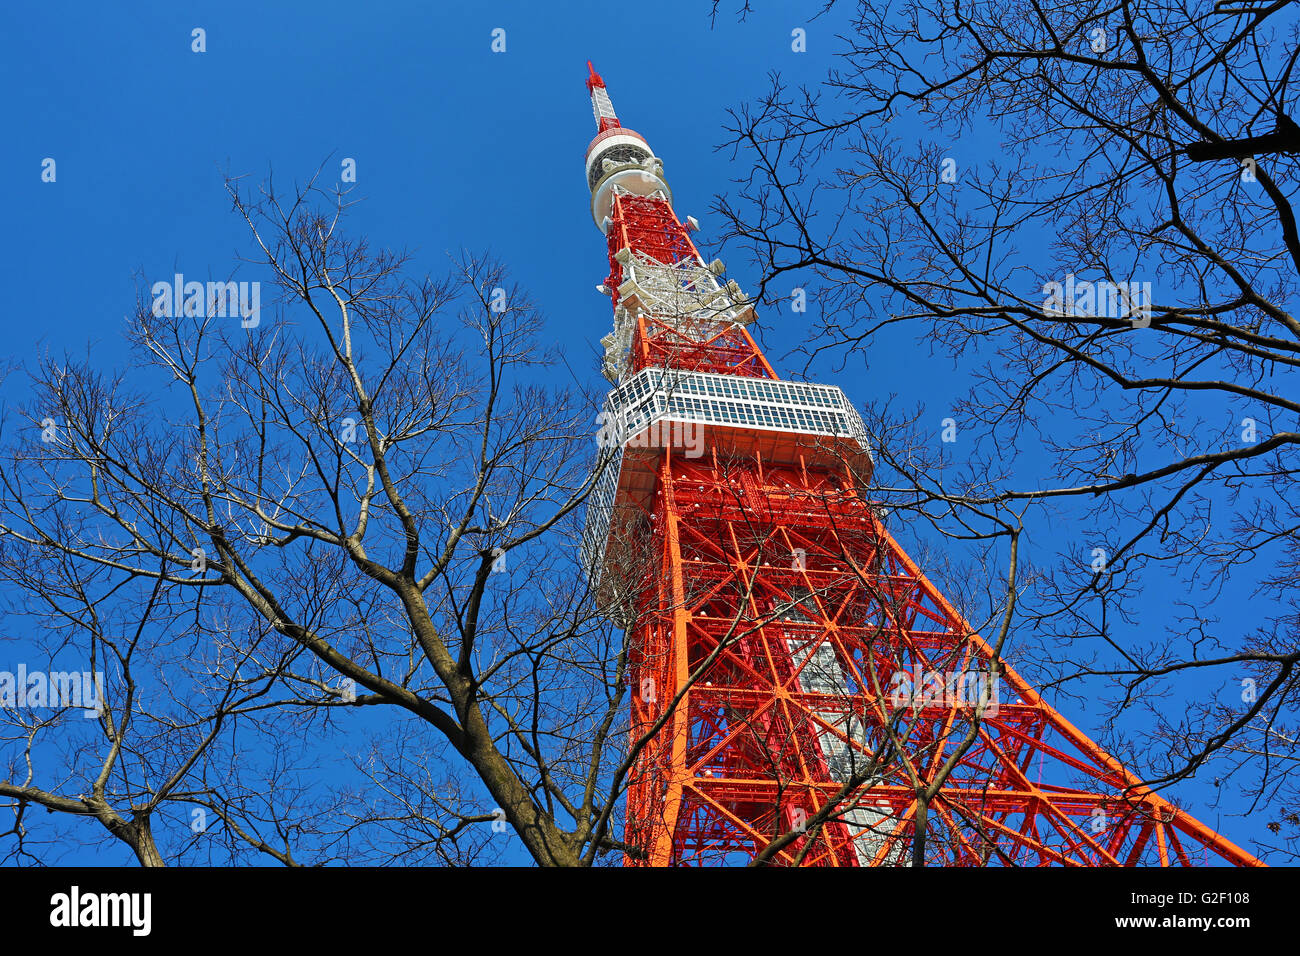 The Tokyo Tower in Tokyo, Japan - Stock Image